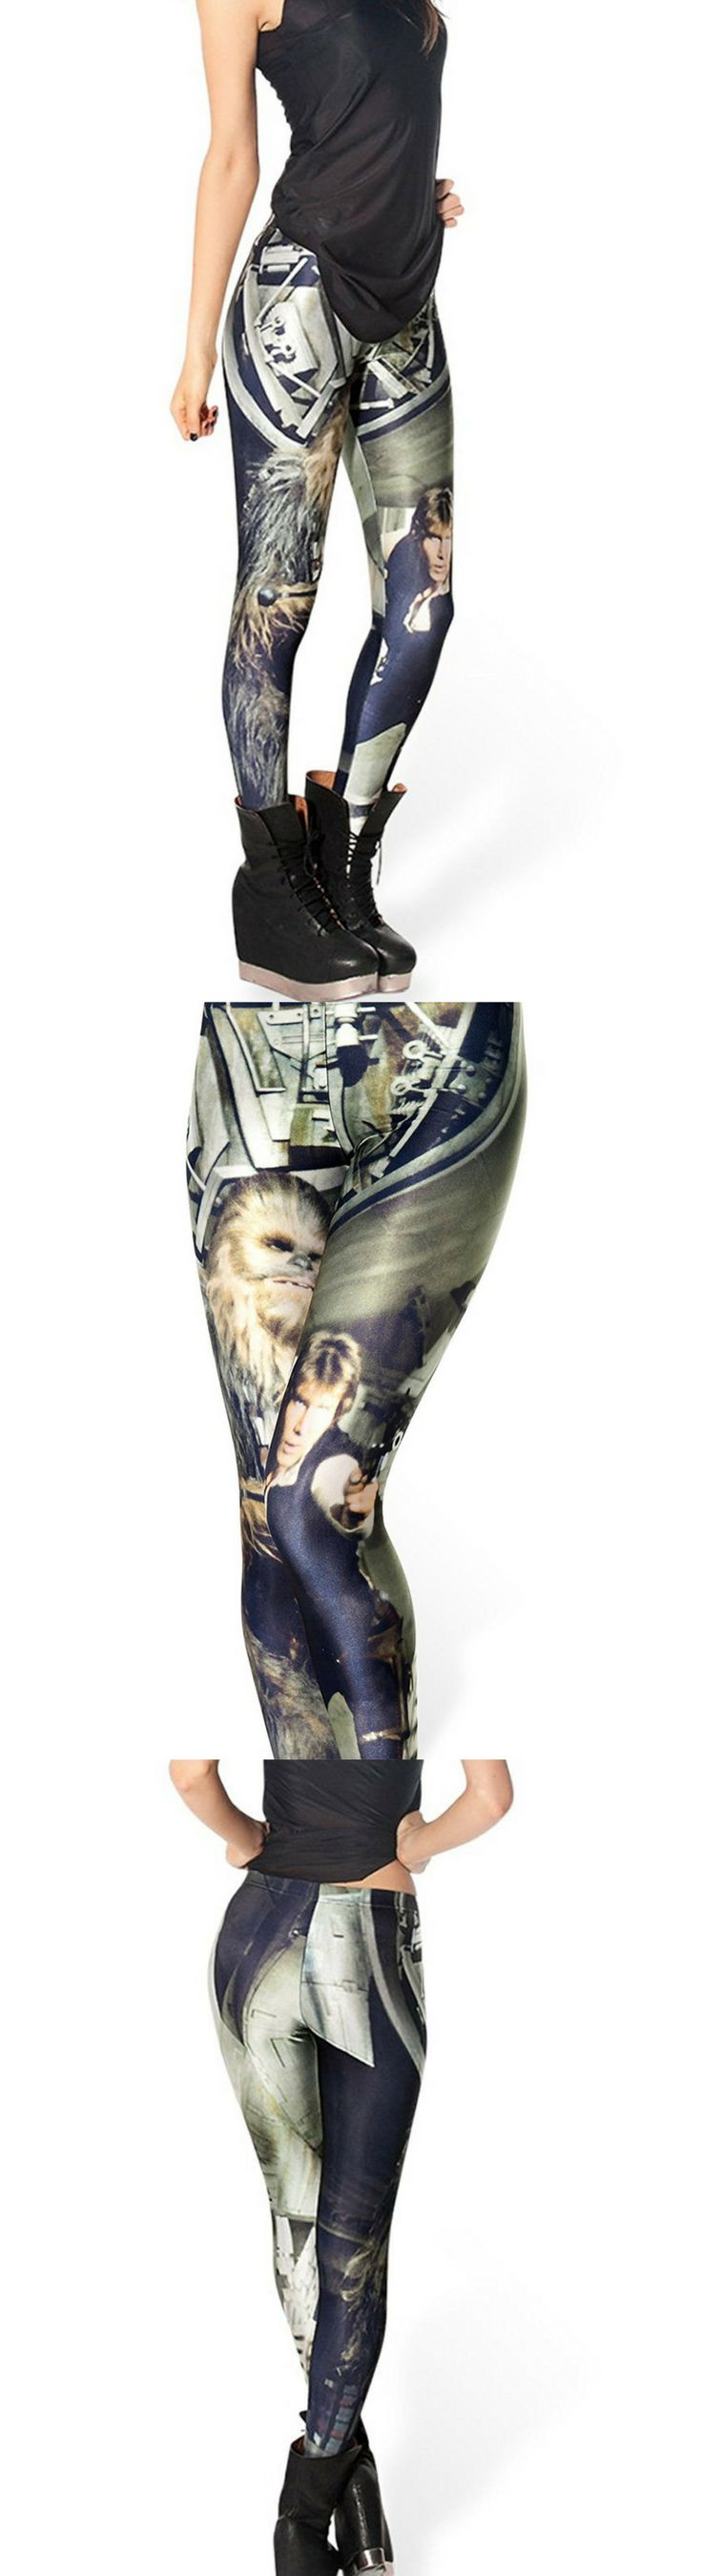 Like peanut butter and jelly, some pairs were just meant to go together, like Han Solo and his Wookie sidekick Chewbacca. #starwars #leggings #chewbacca